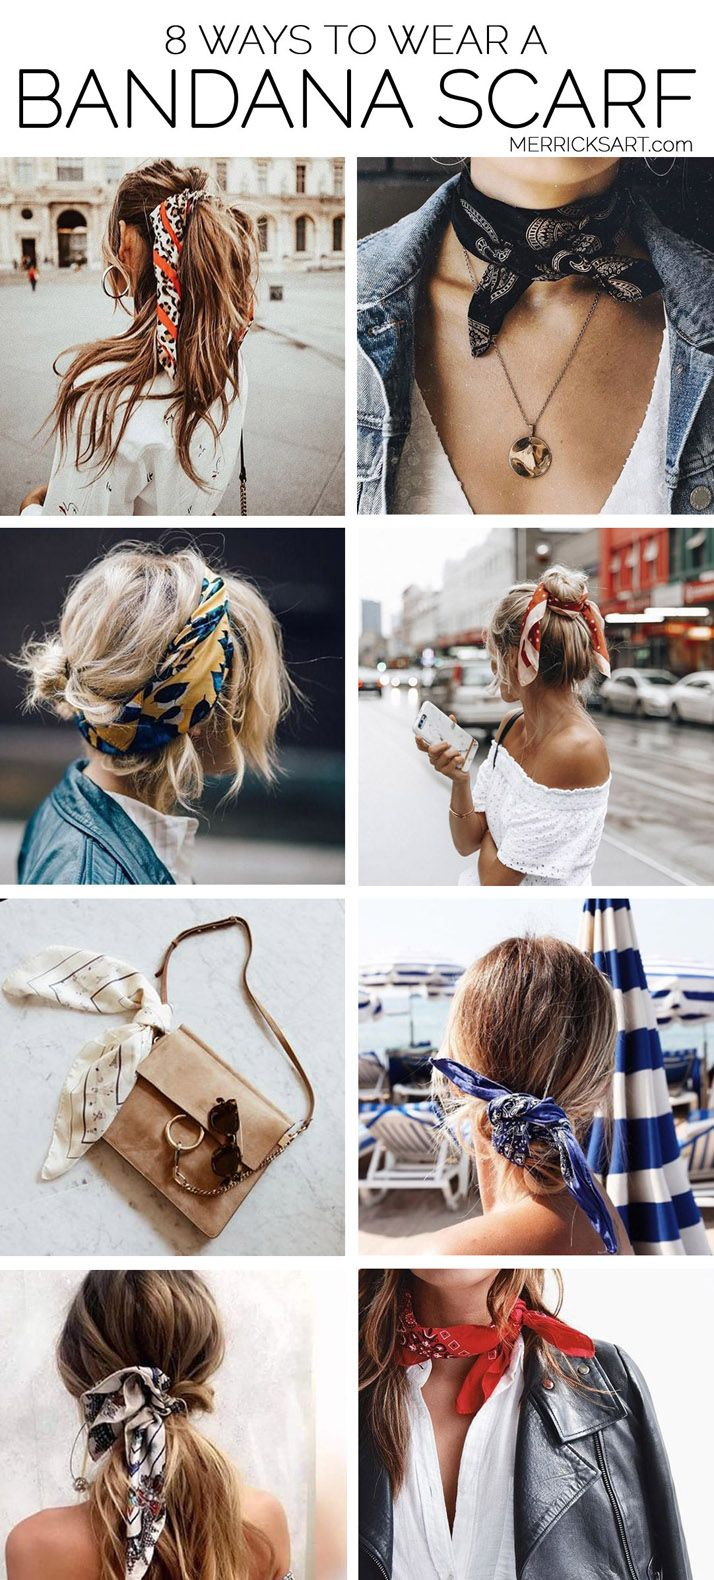 Here S How To Style That Bandana Scarf Bandanascarf Howtostyle Scarves Scarf Hairstyles Scarf Outfit Style